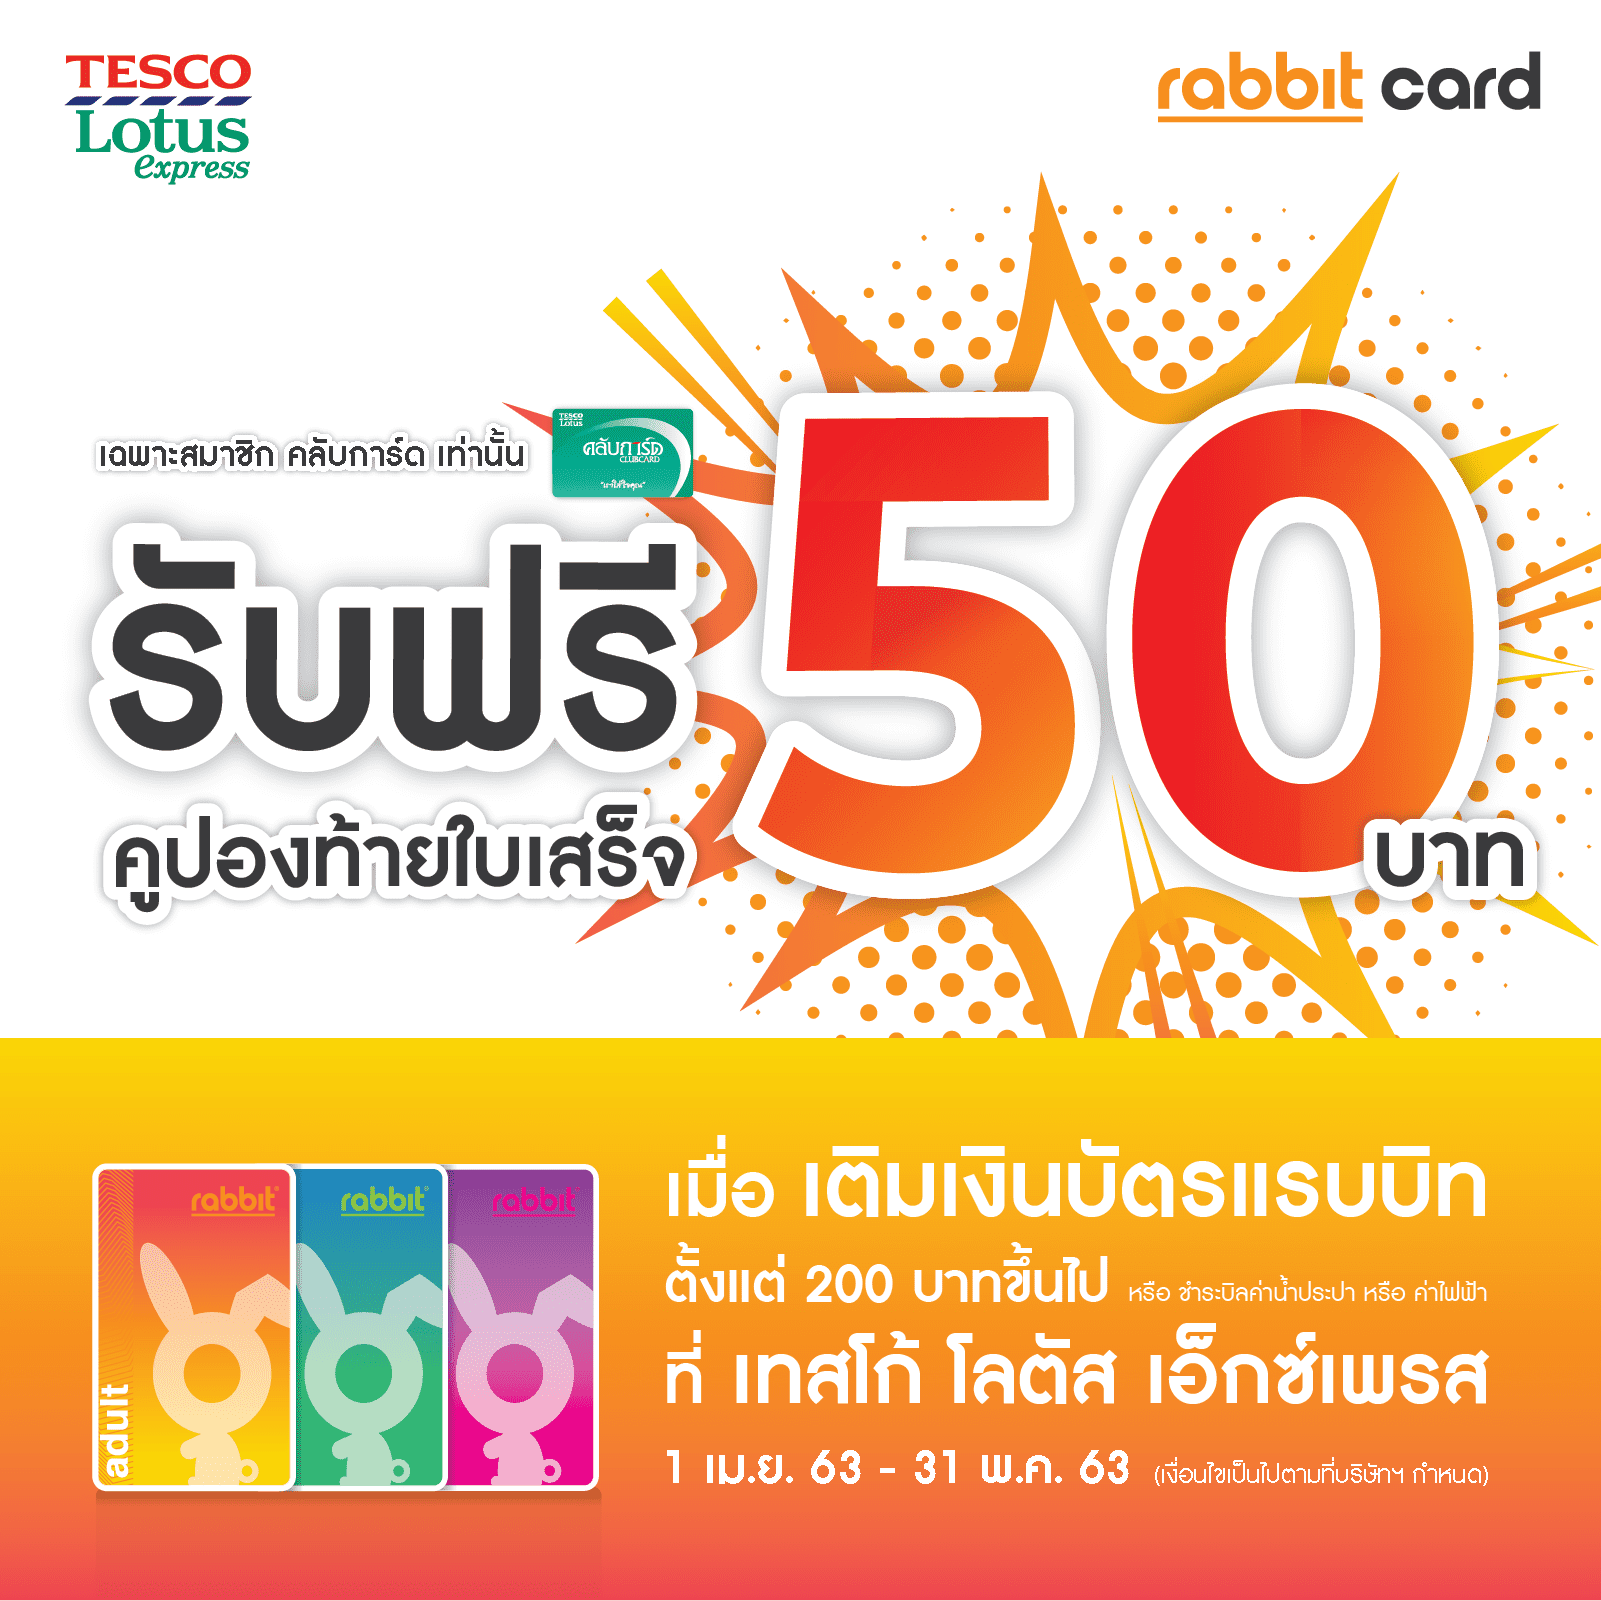 Get Free Coupon 50 Bath @Tesco Lotus Express